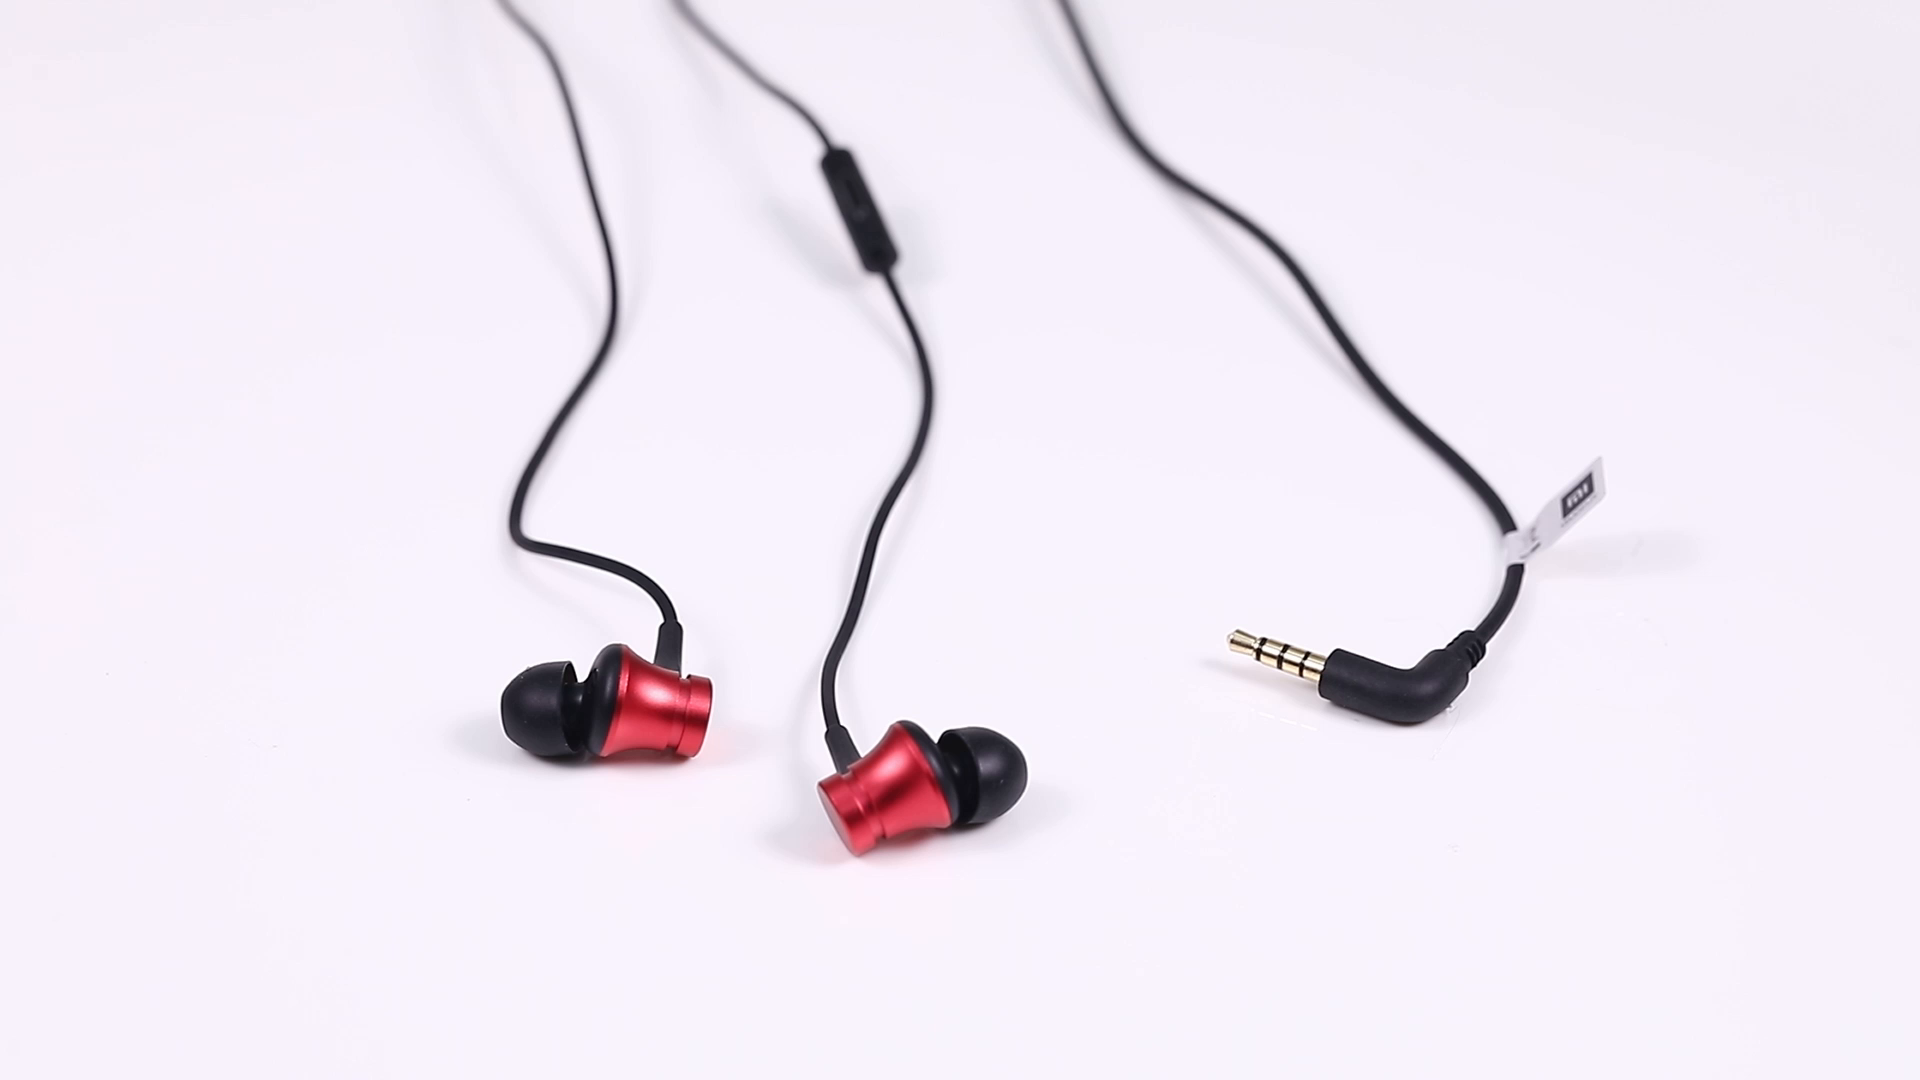 The looking of the Xiaomi Basic earphone with mic and best earphone in 2019. with Black in color.